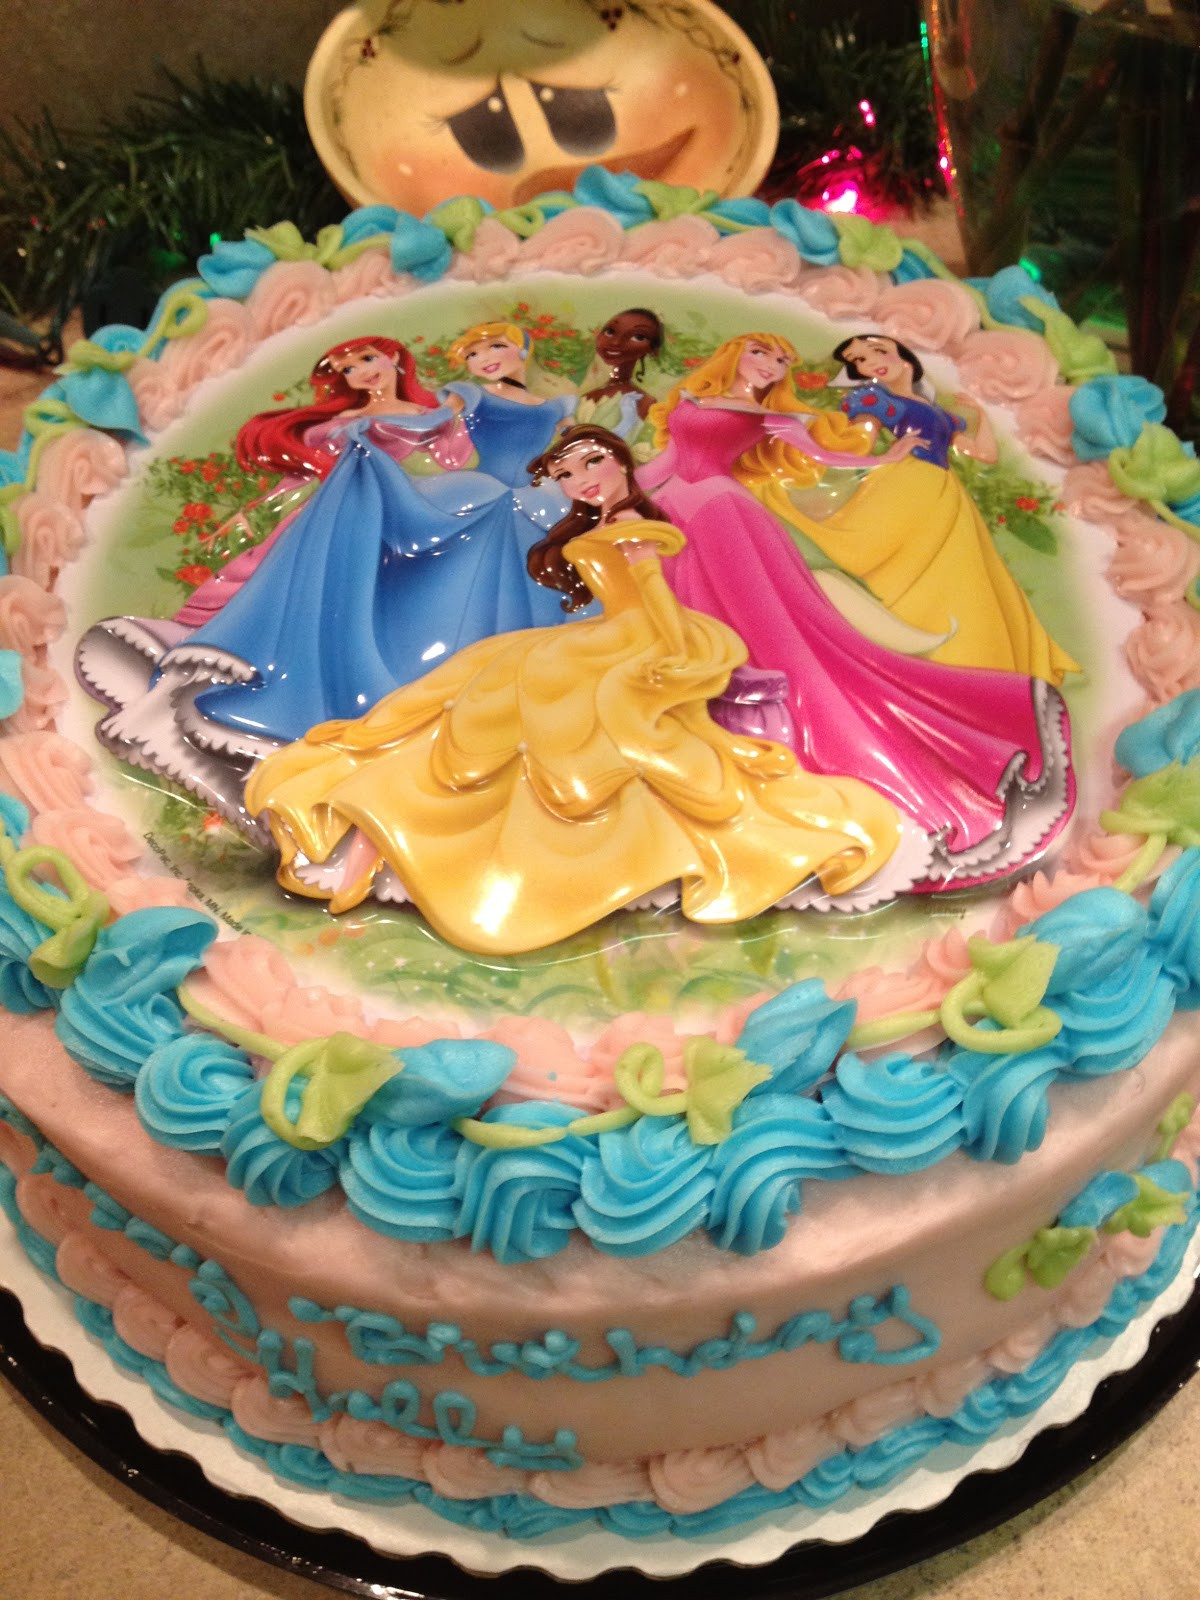 Best ideas about Sam Club Bakery Birthday Cake Designs . Save or Pin Sams Club Birthday Cake Ideas and Designs Now.